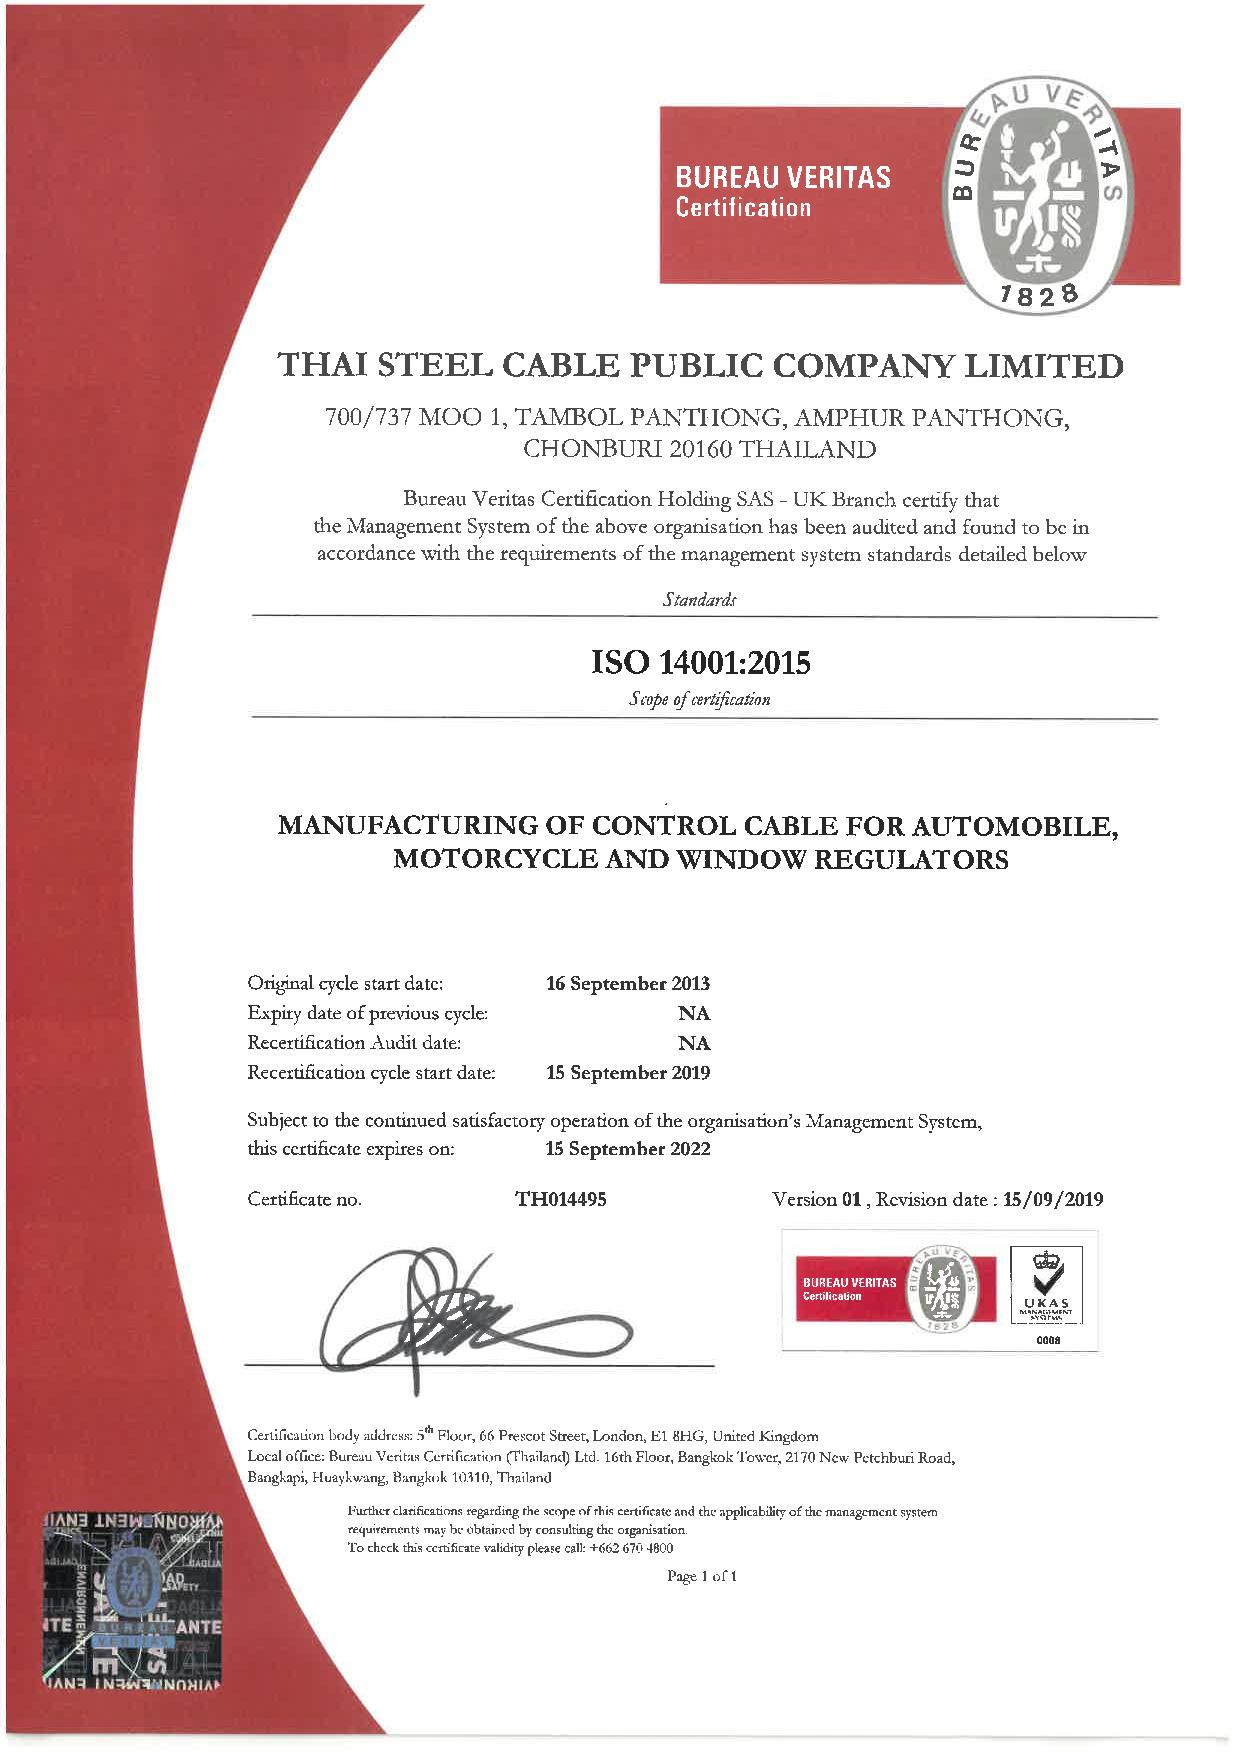 3rd Re-certificate of ISO14001:2015